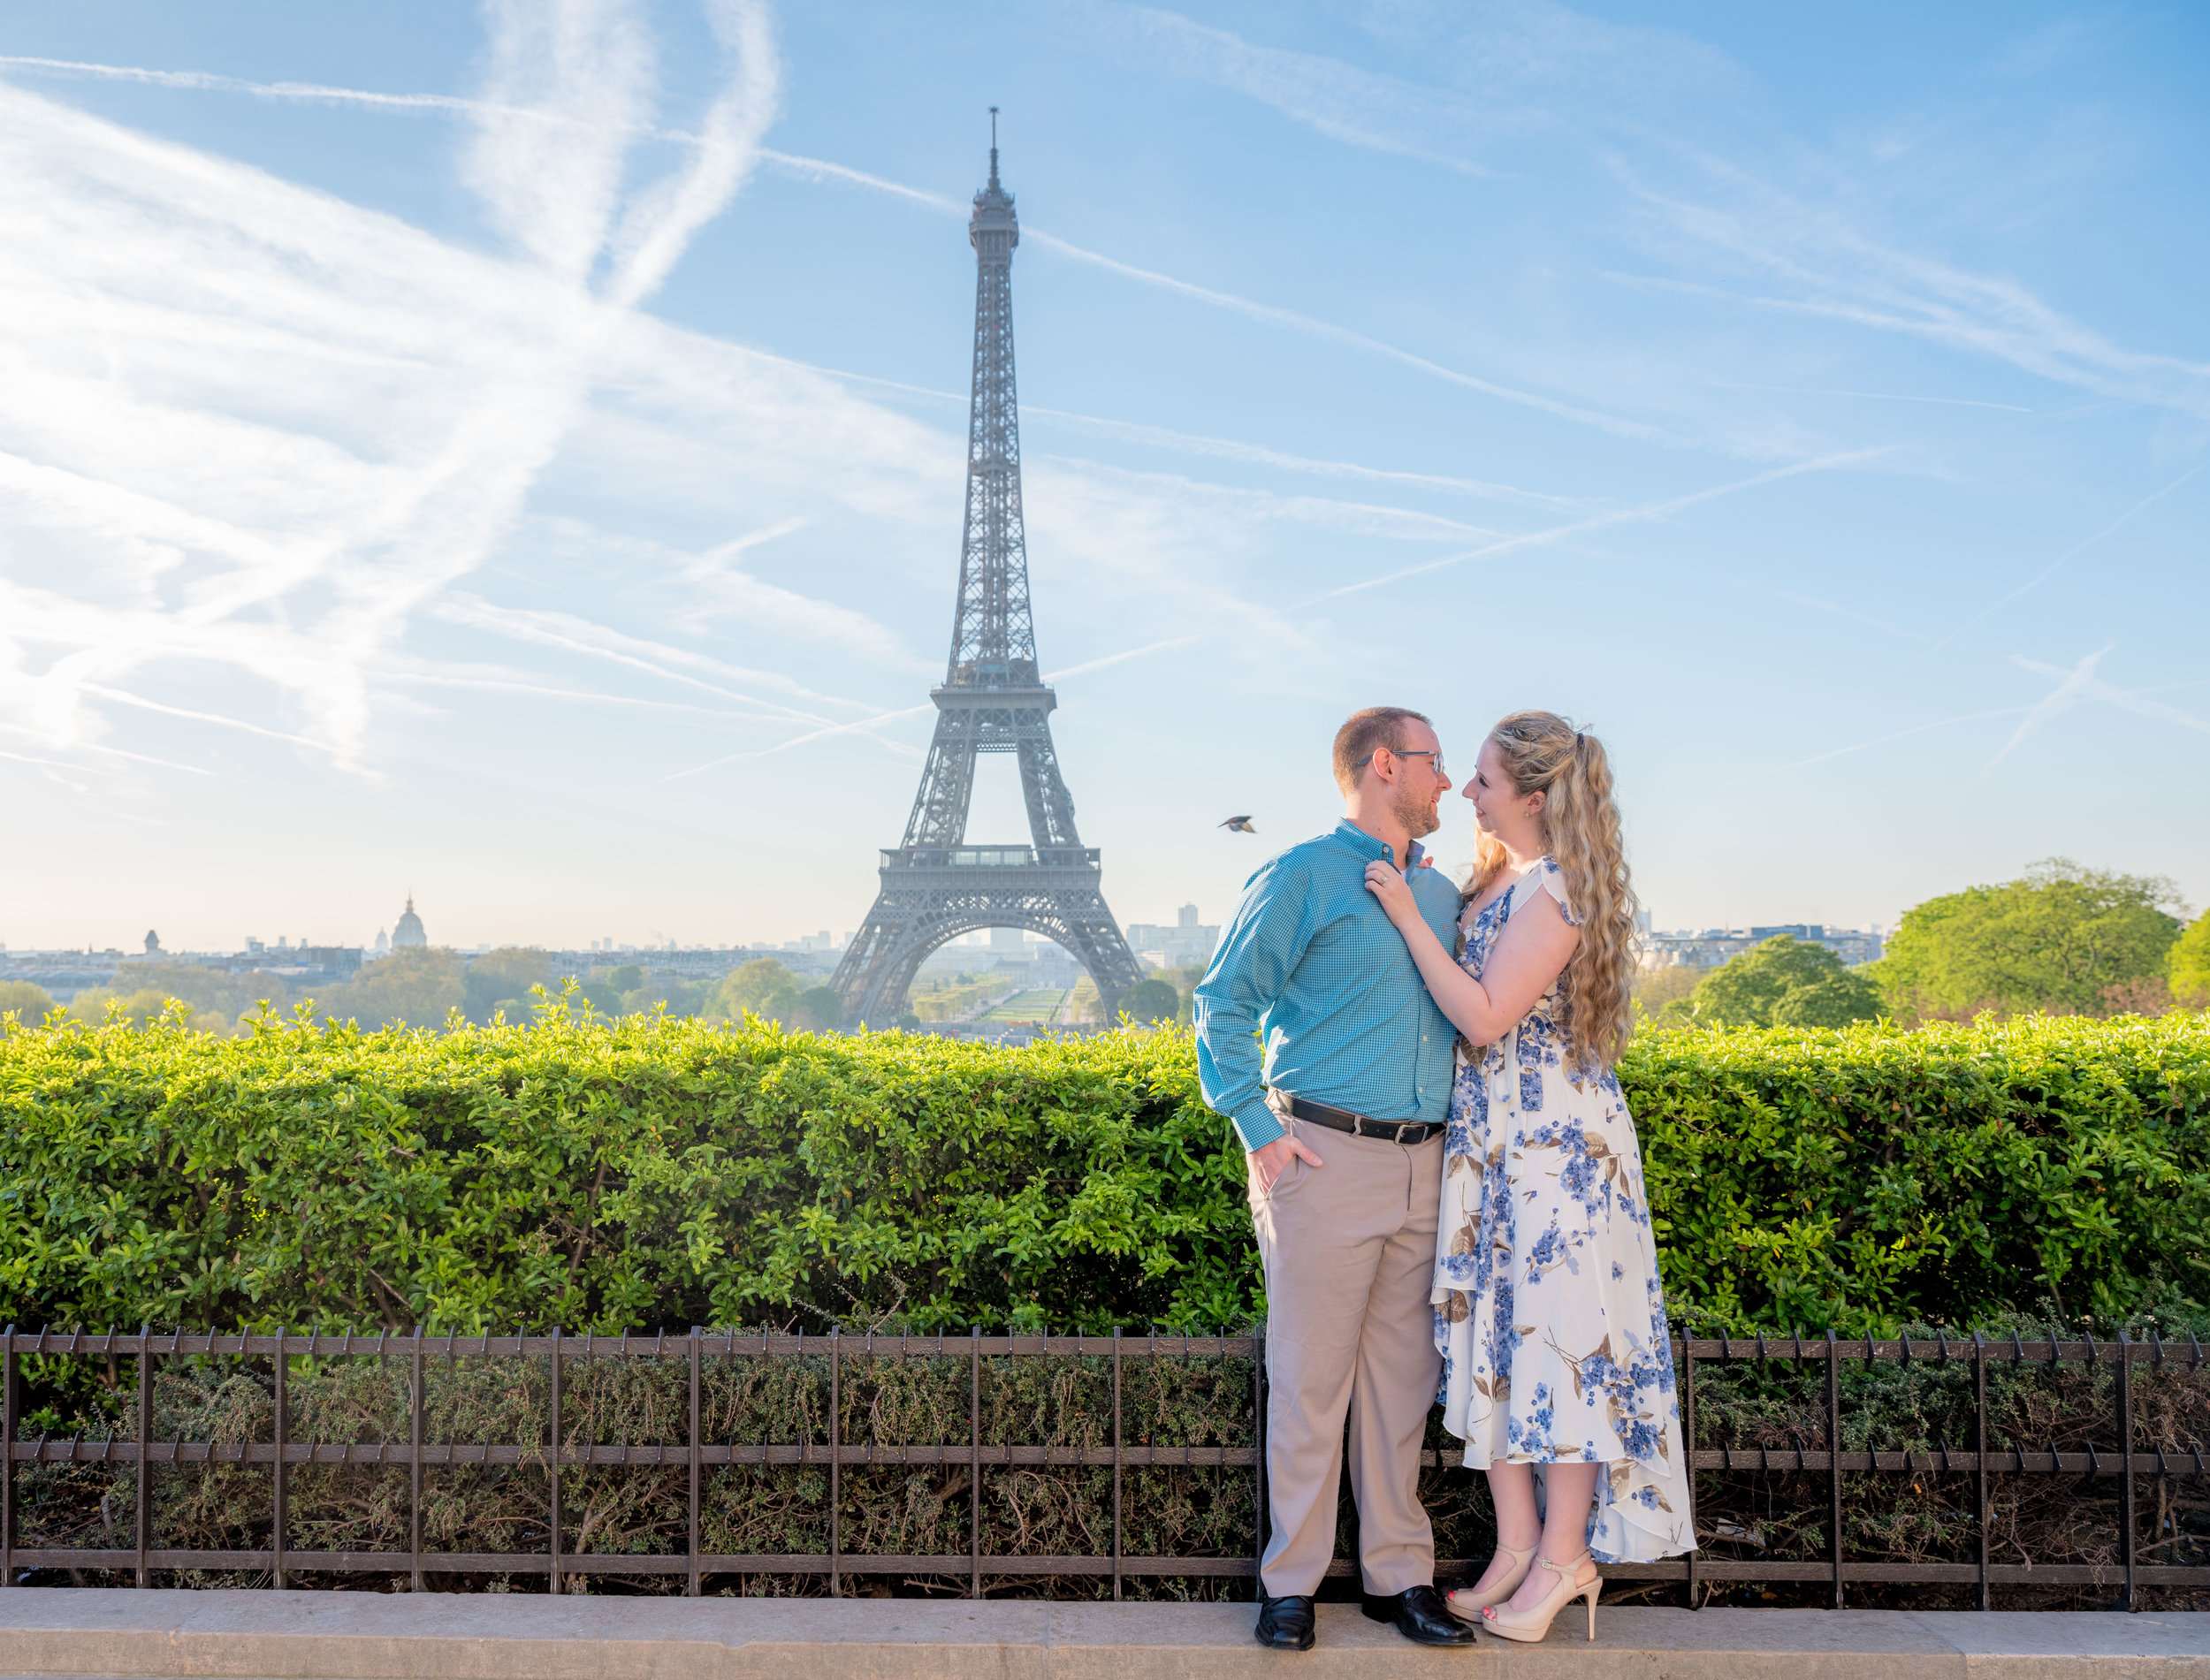 An early summertime weather romantic couples photo session at the Eiffel Tower